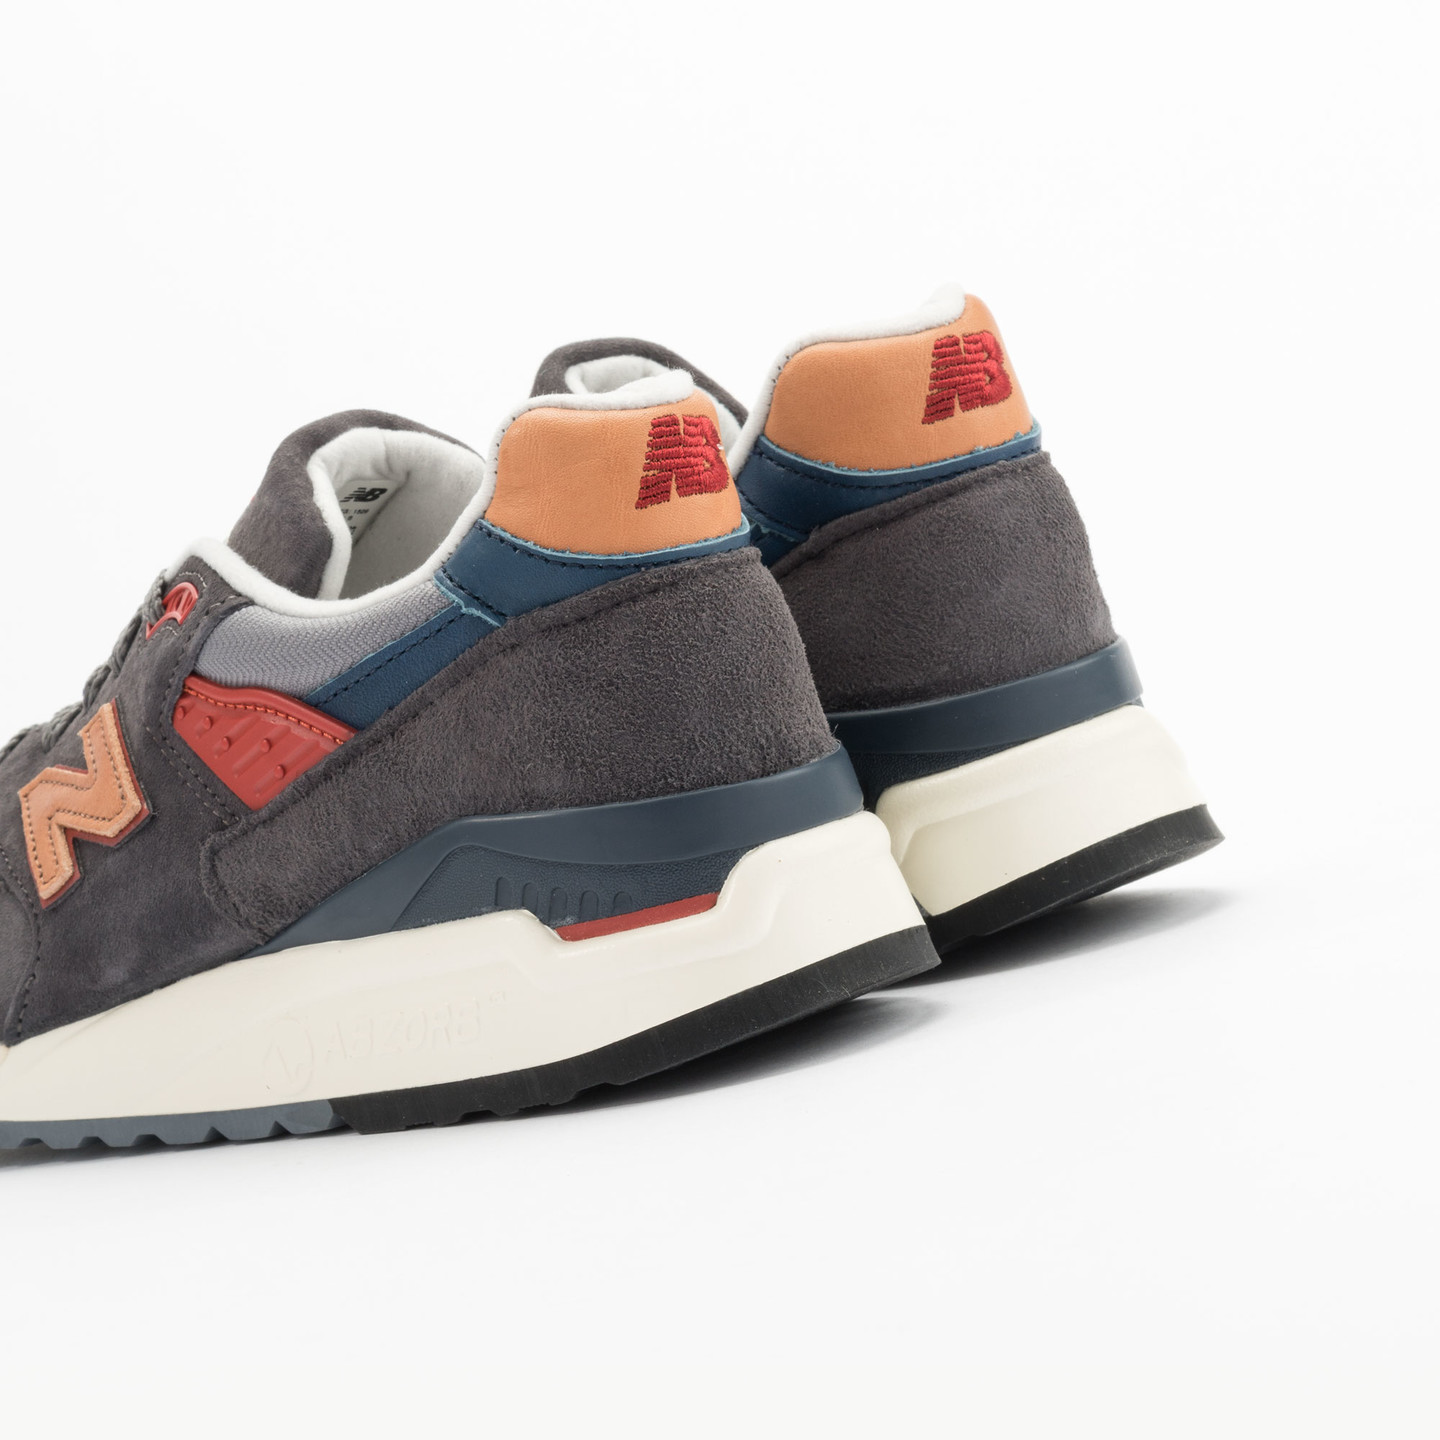 New Balance M998 Made in USA Dark Grey / Beige / Red / Navy M998DBR-43